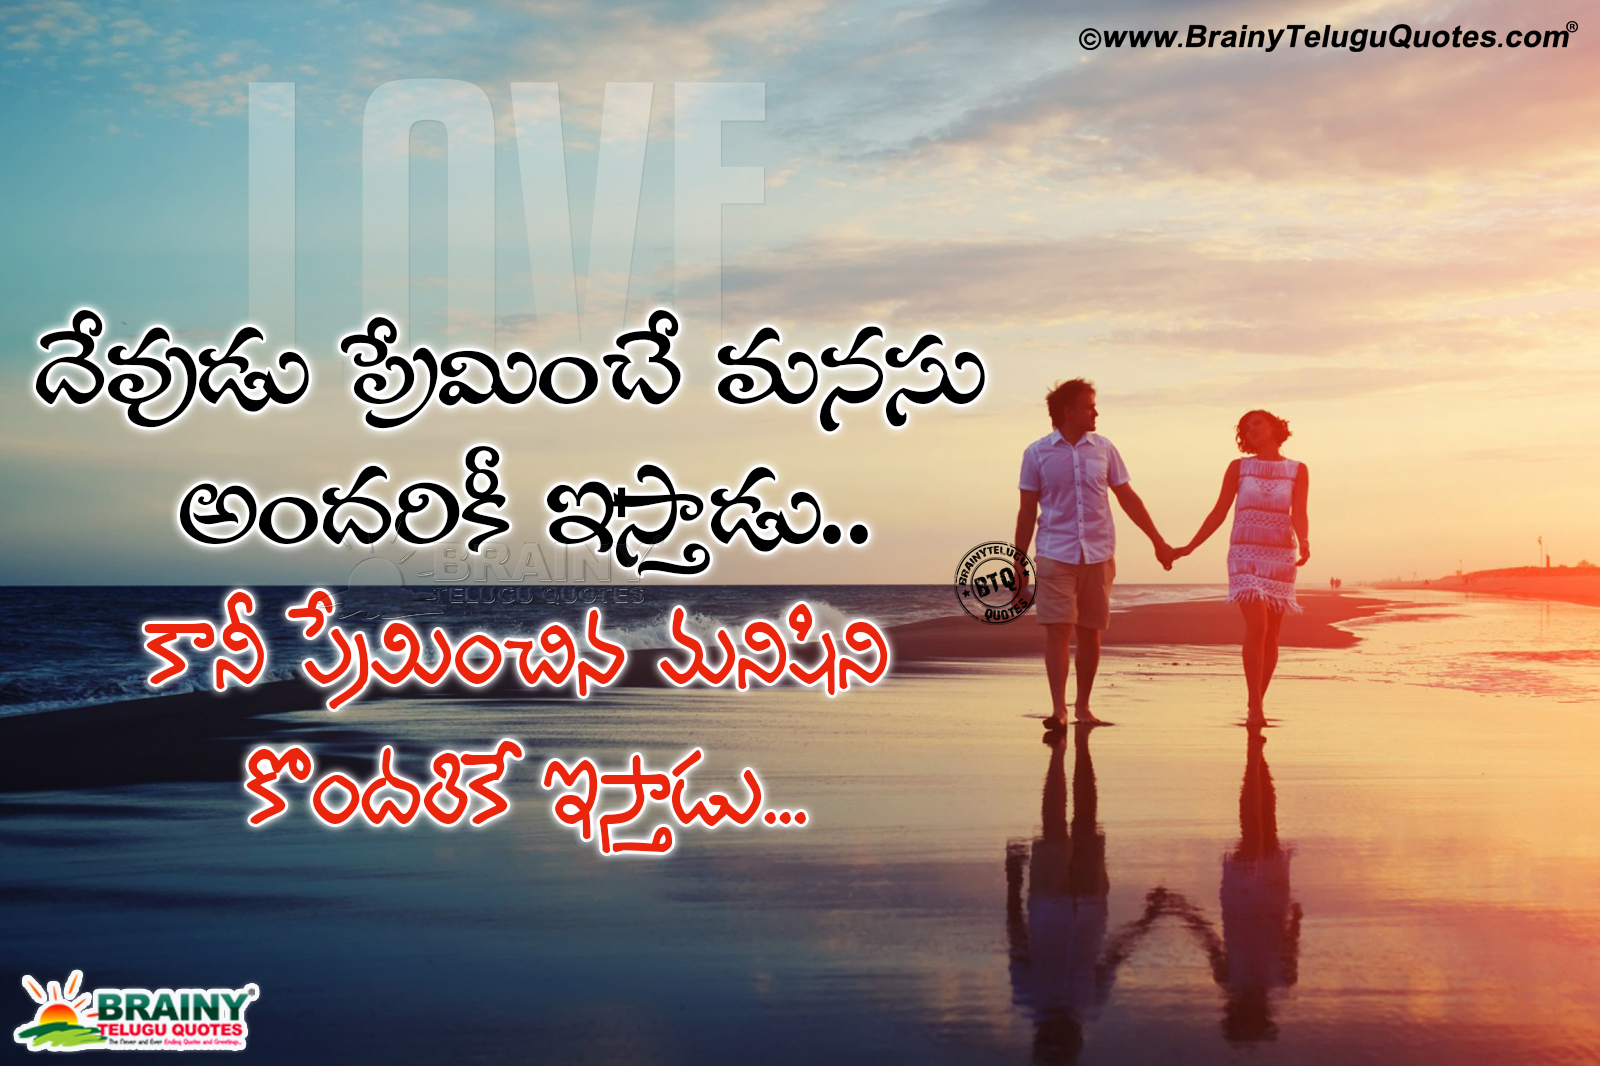 Best Love Quotes With Hd Wallpapers In Telugu Heart Touching Love Quotes In Telugu Brainyteluguquotes Comtelugu Quotes English Quotes Hindi Quotes Tamil Quotes Greetings